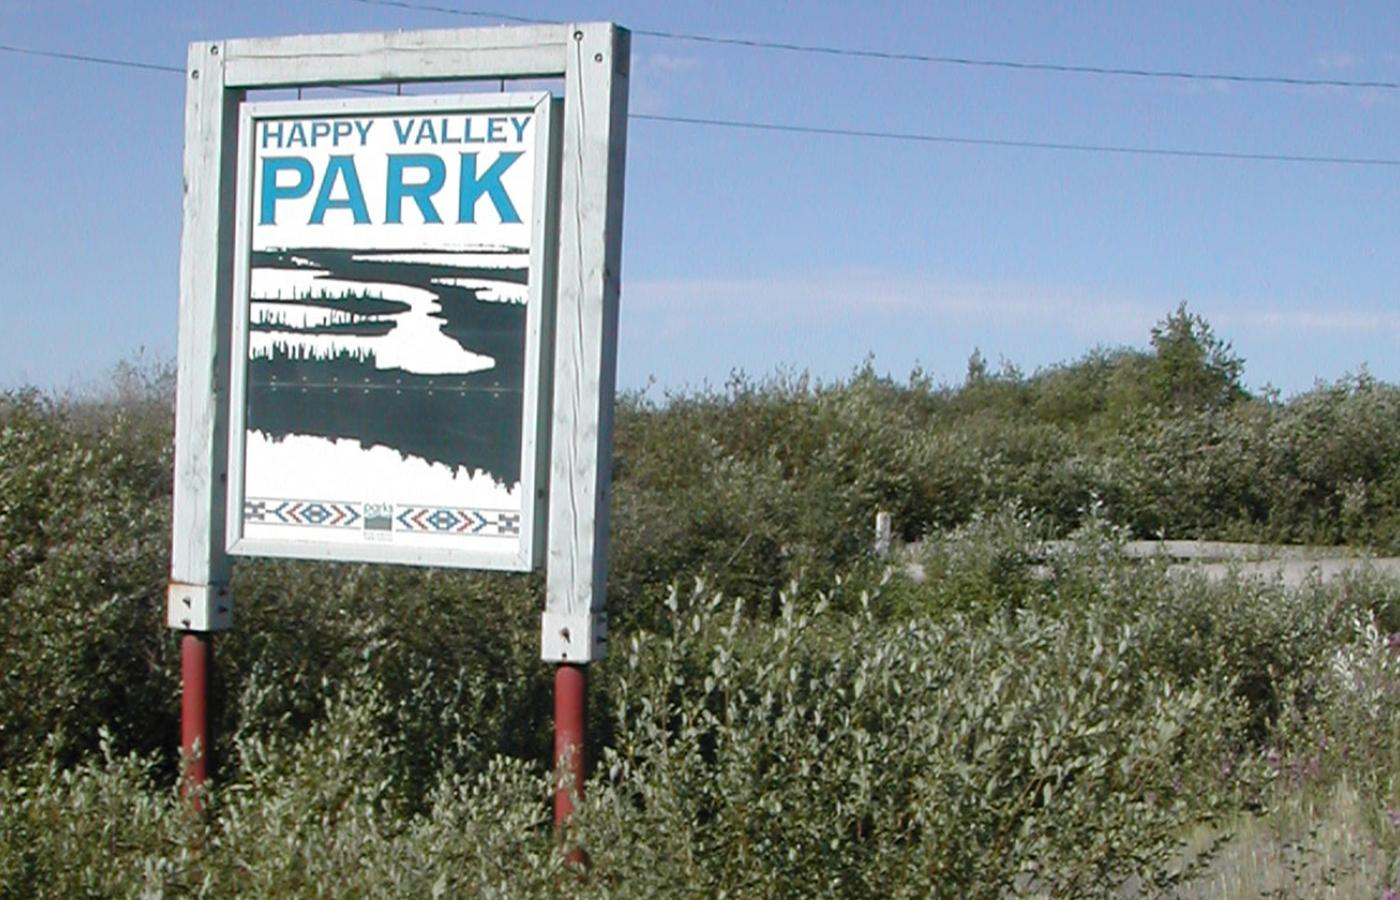 the happy valley territorial park sign in the summer